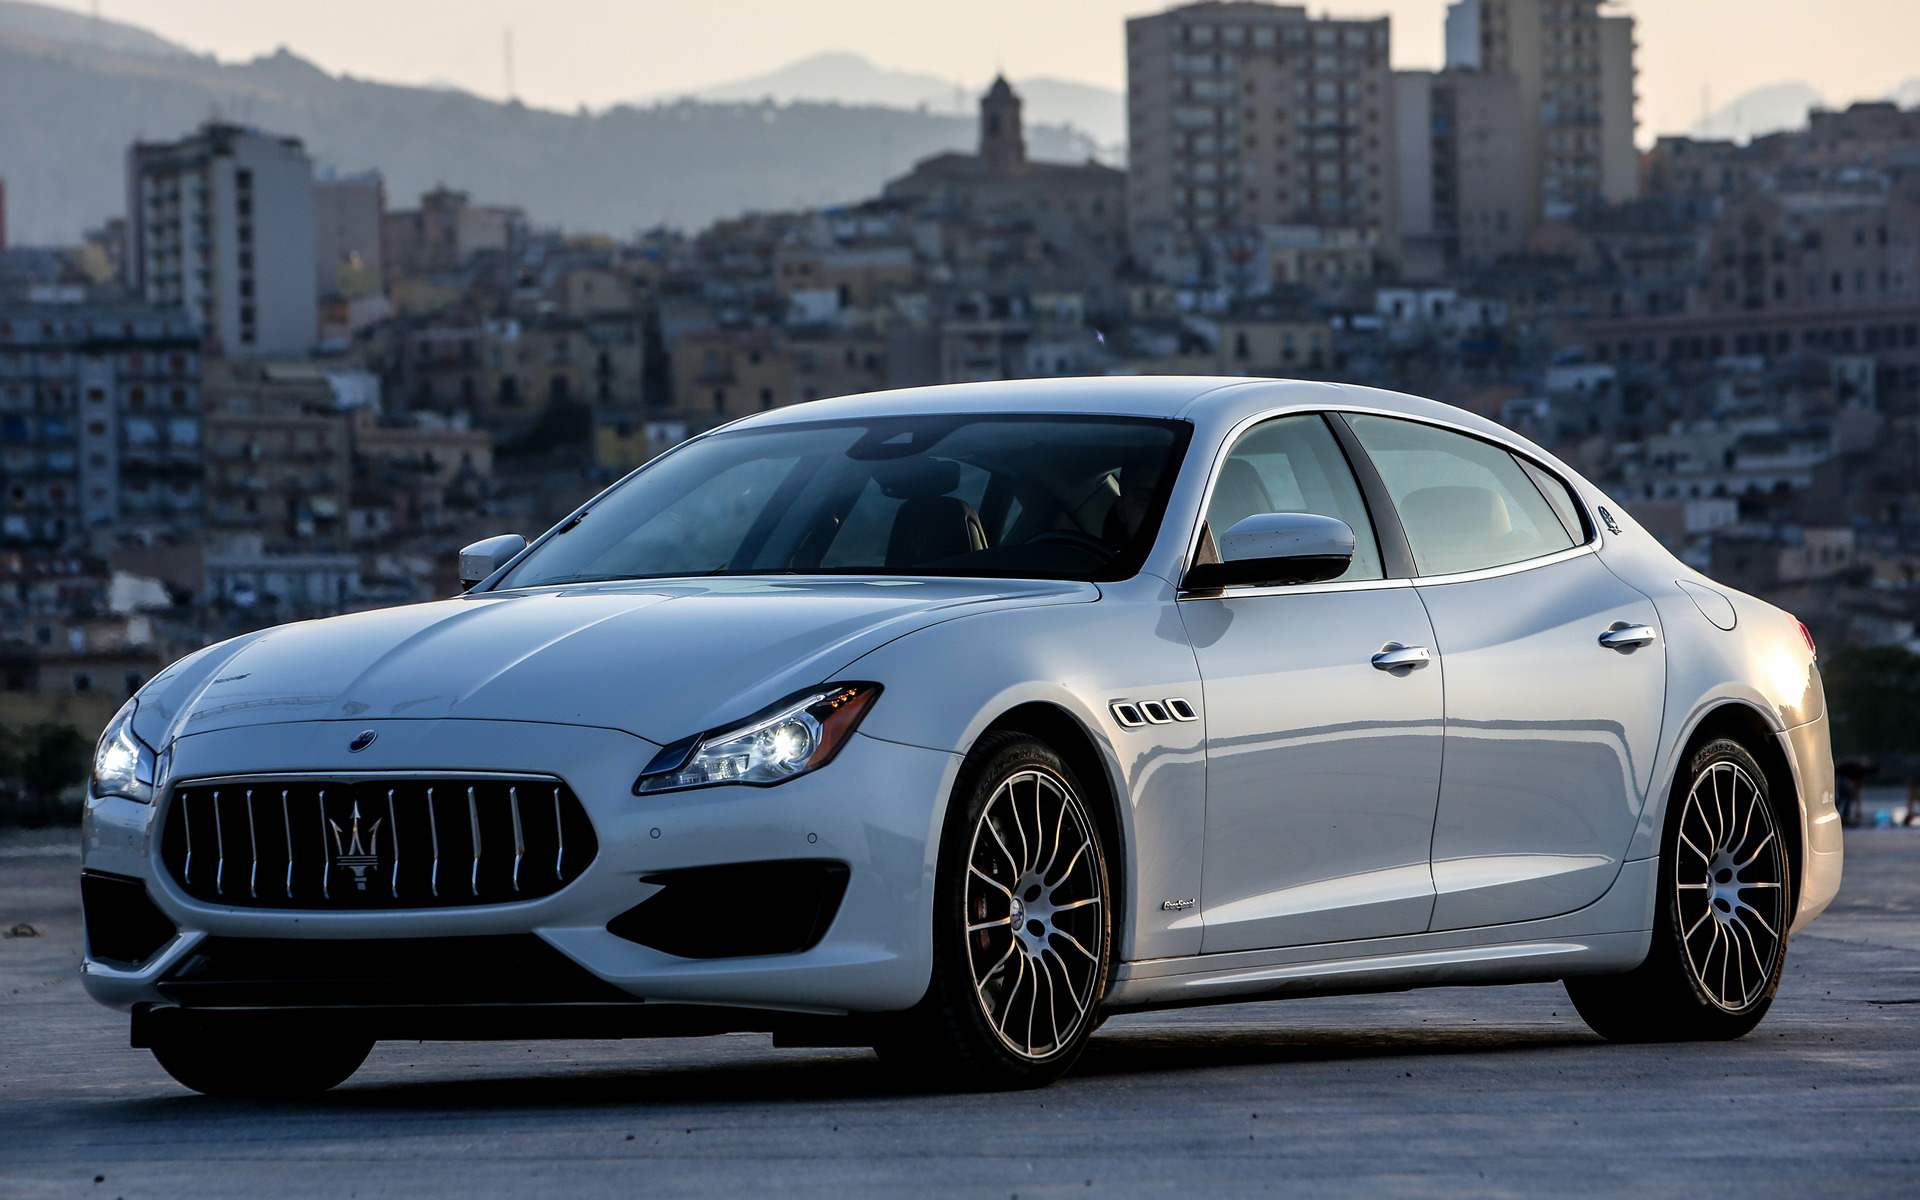 2016 Maserati Quattroporte GTS GranSport - Wallpapers and ...